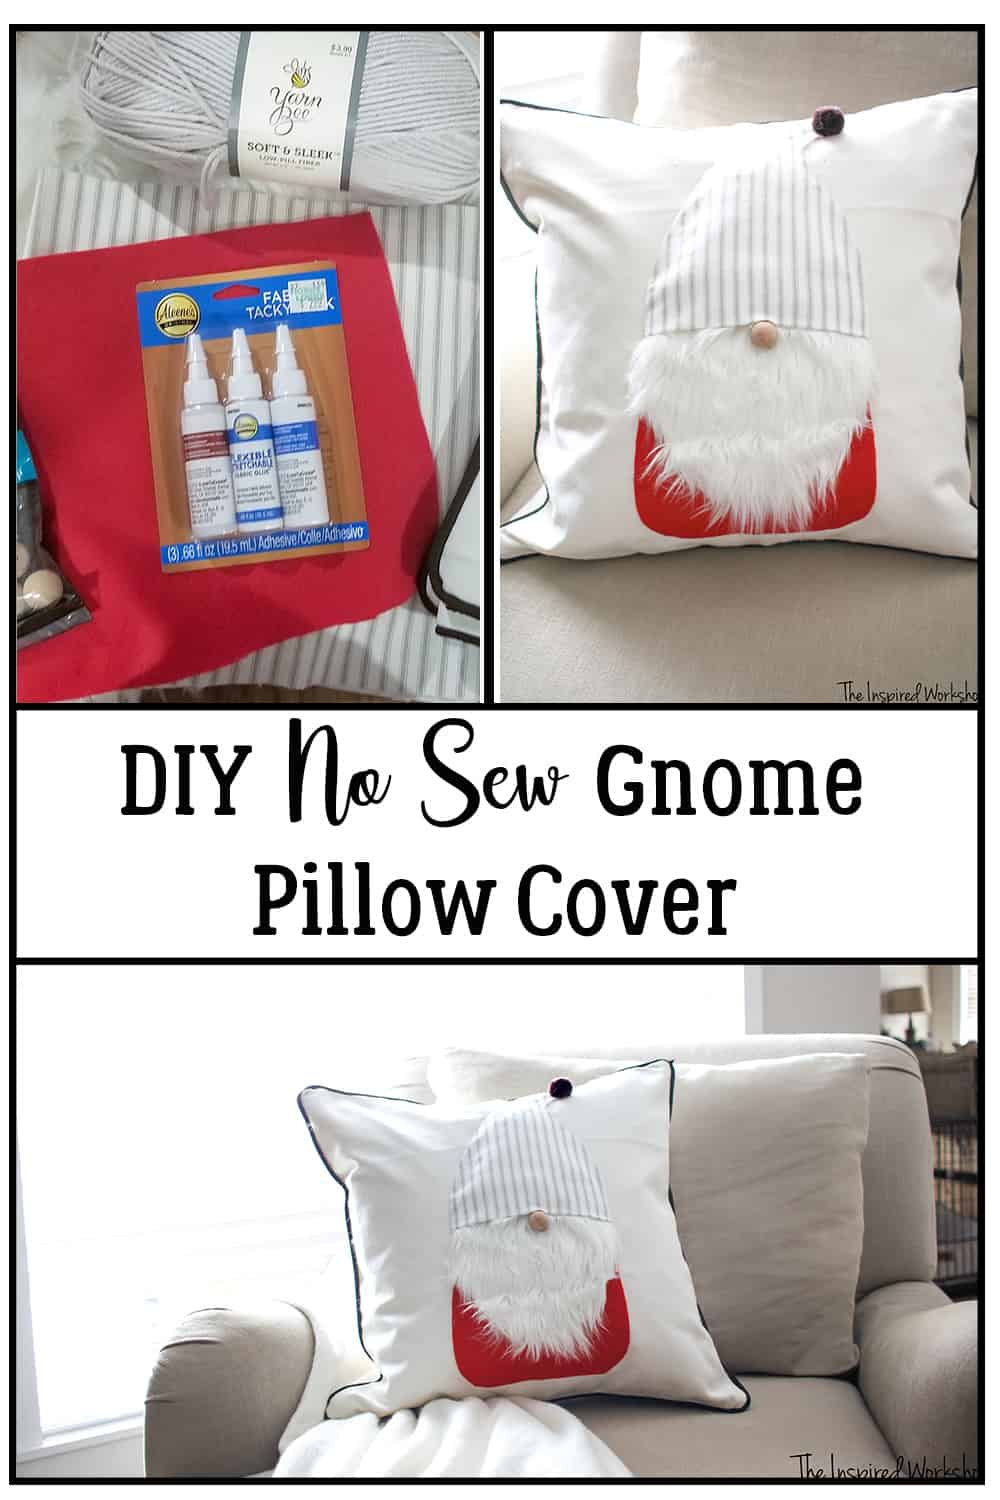 DIY Gnome Pillow Cover - No sew